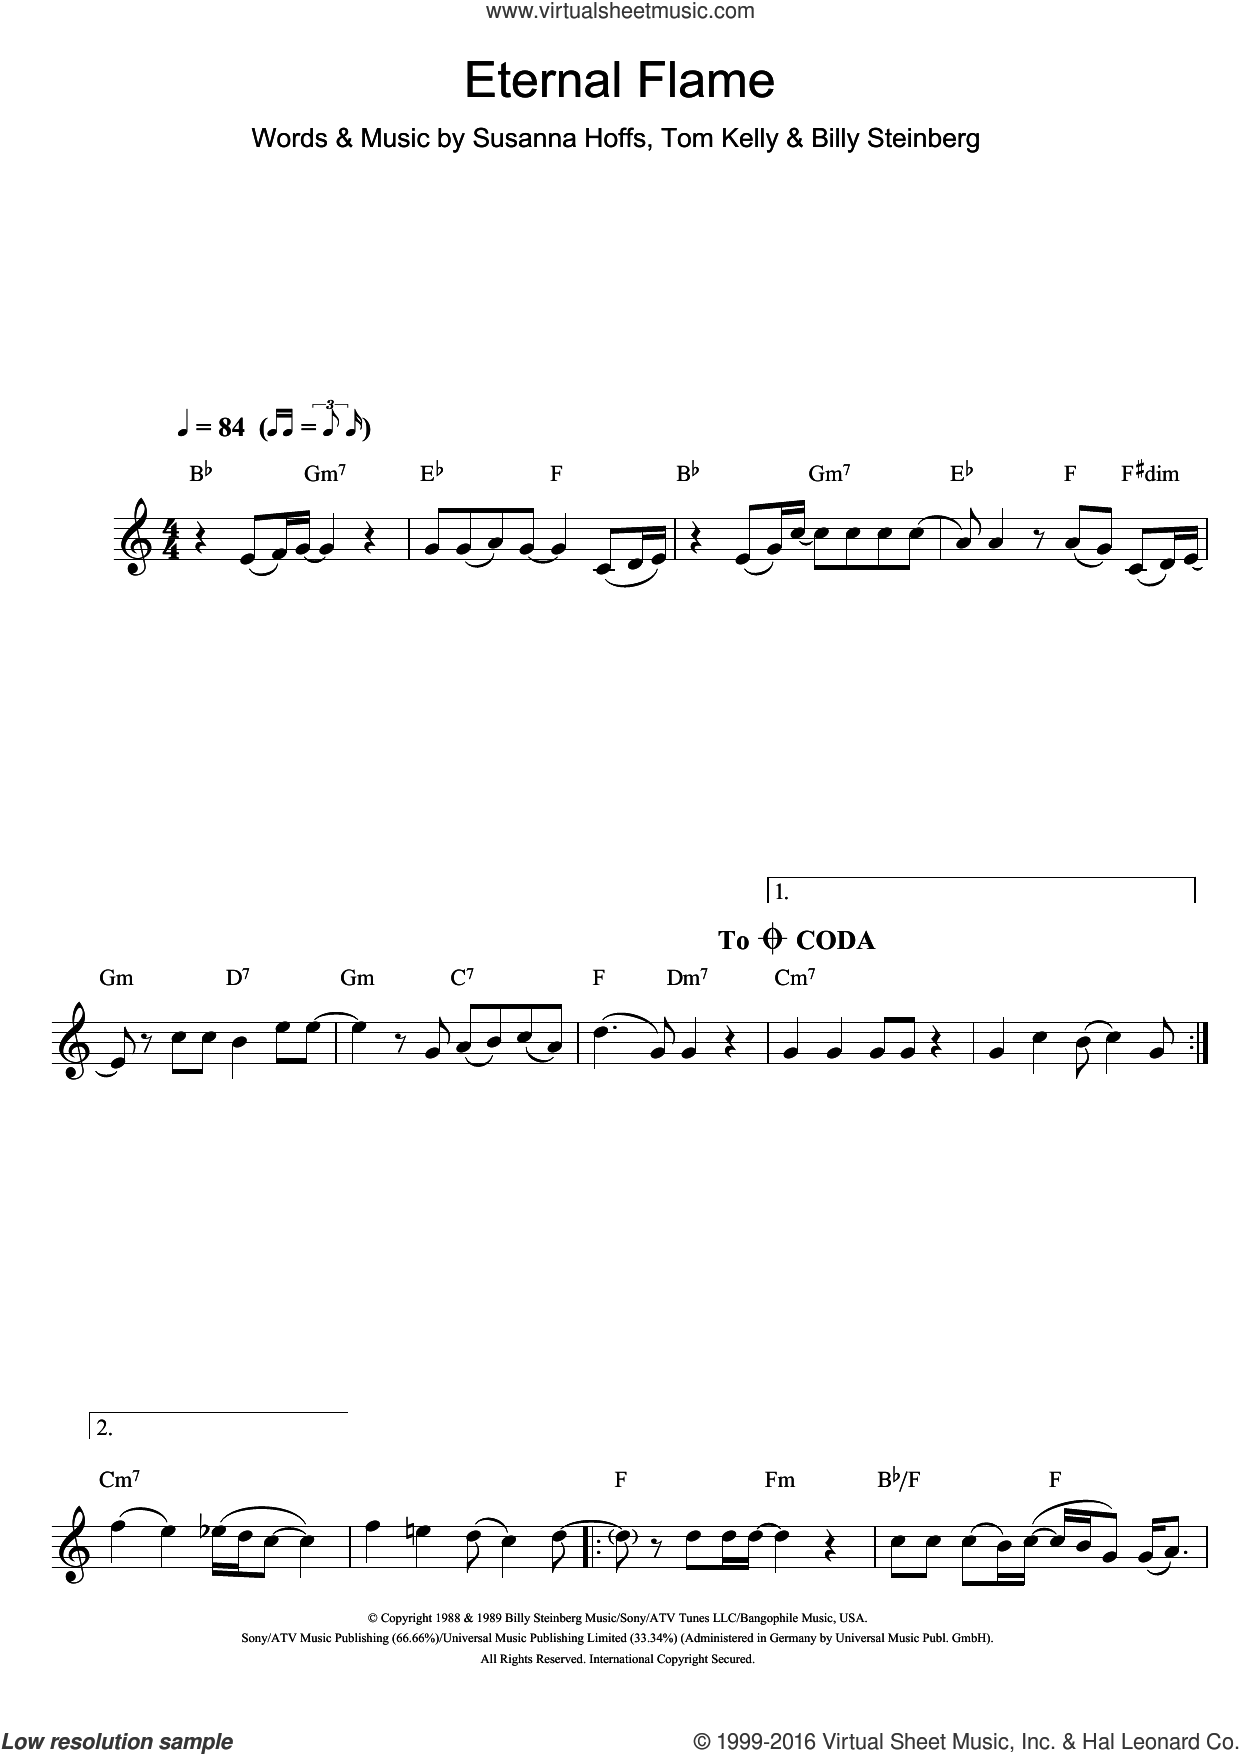 Eternal Flame sheet music for clarinet solo by Atomic Kitten, The Bangles, Billy Steinberg, Susanna Hoffs and Tom Kelly, intermediate skill level